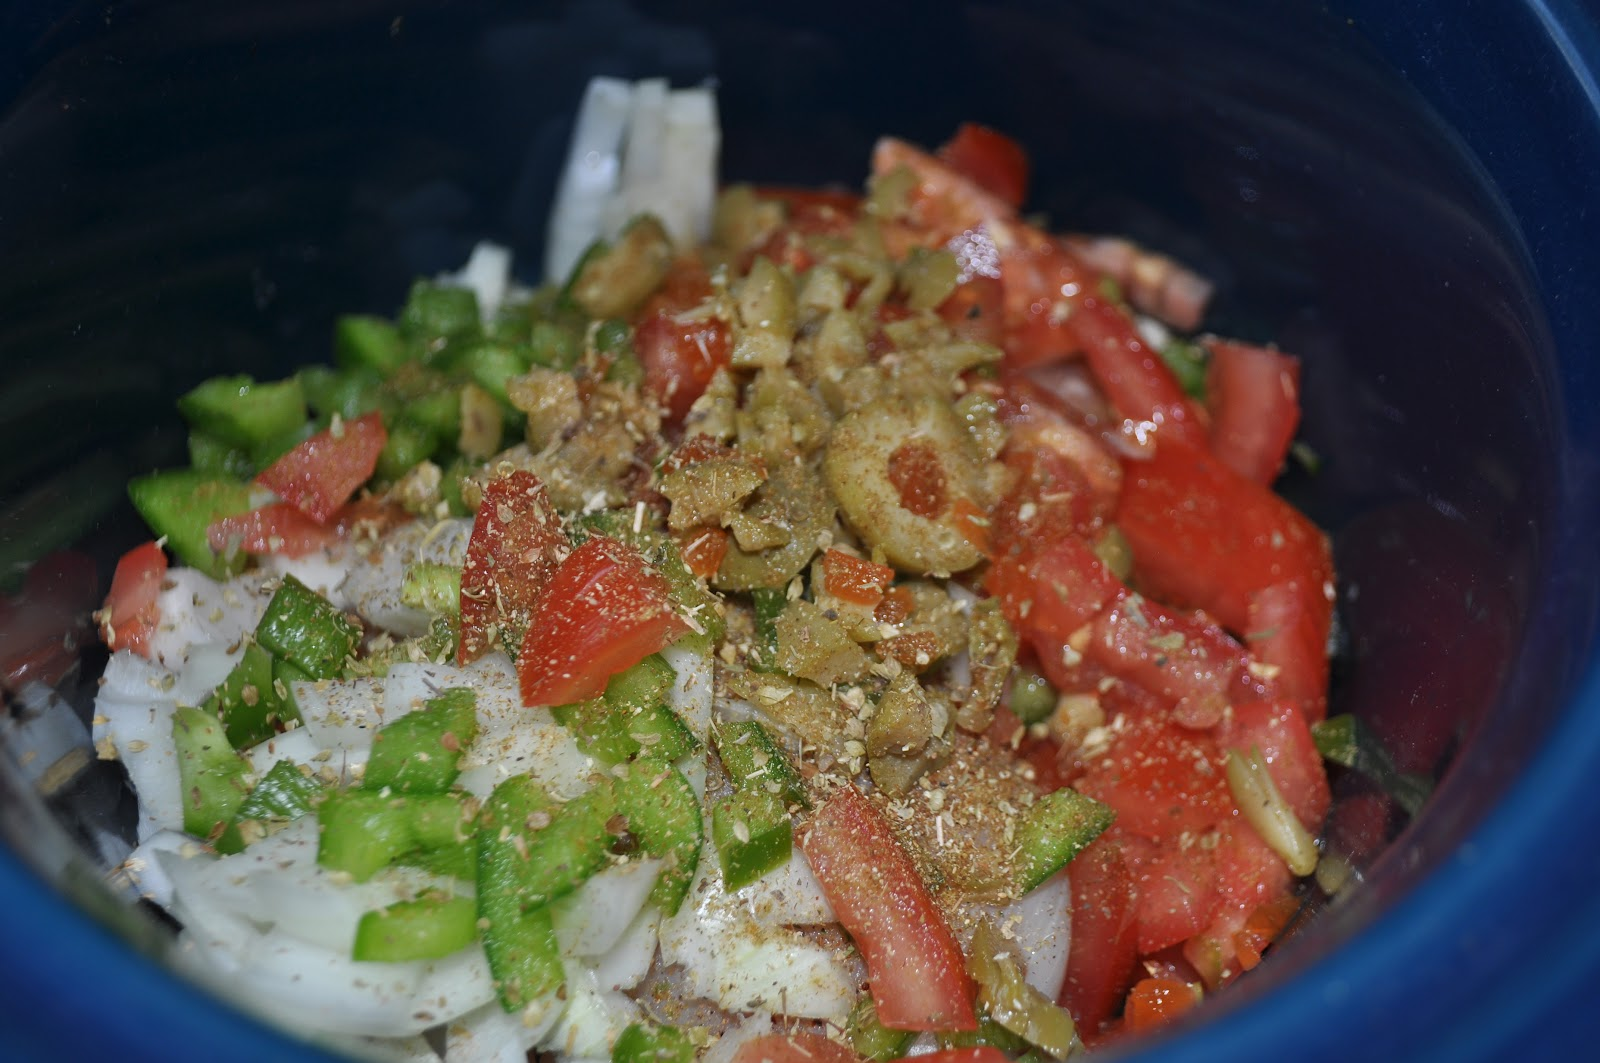 Meals For Real: Crockpot Chicken a La Criolla